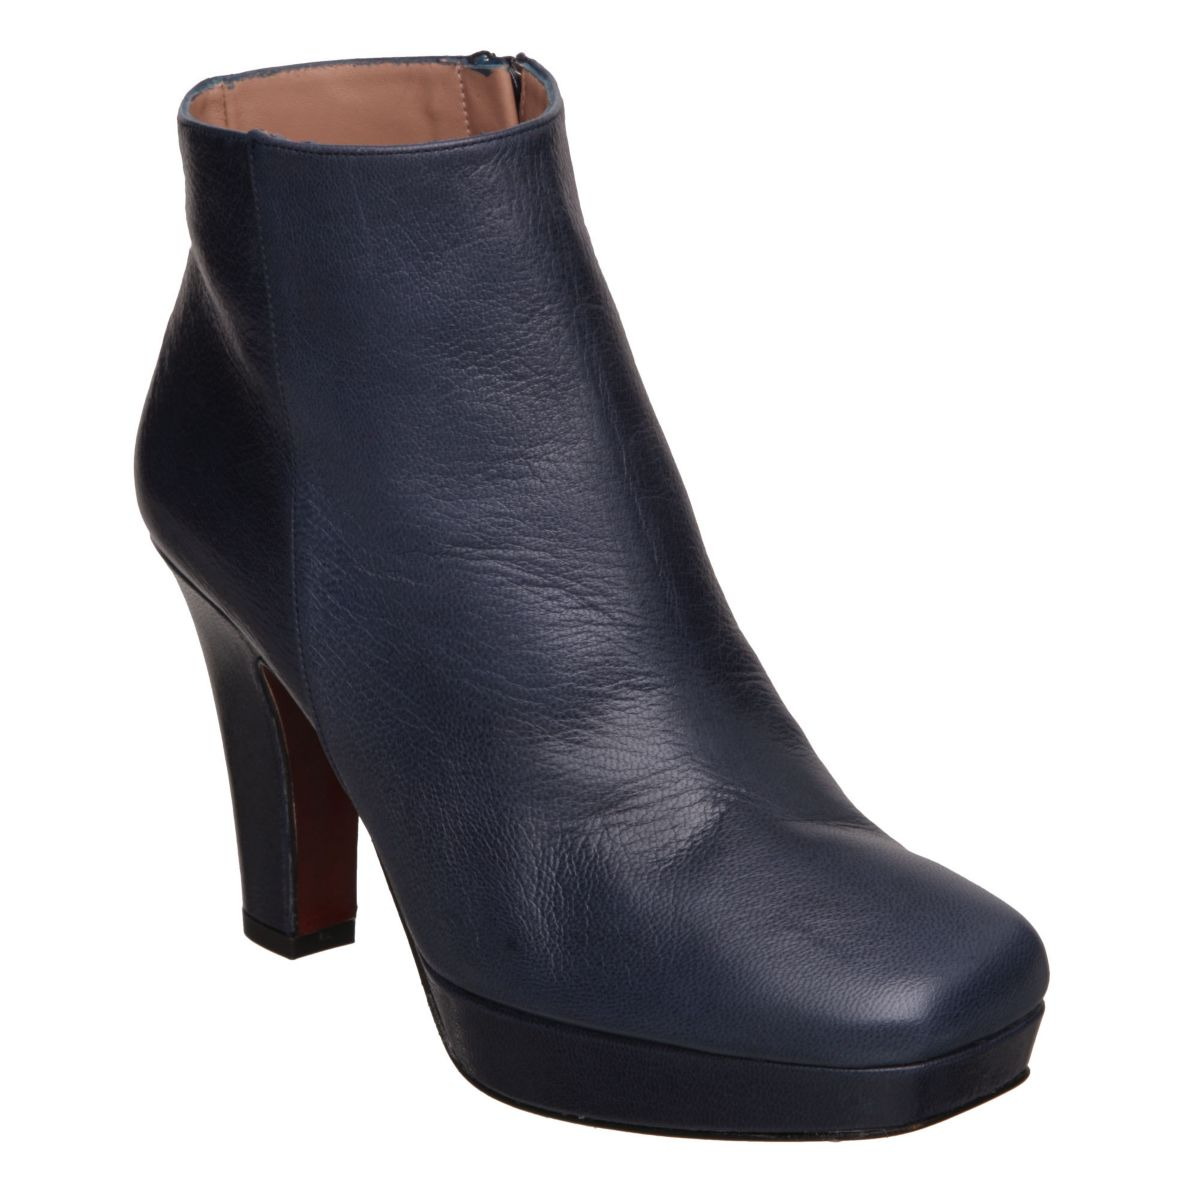 PIED-A-TERRE-SNYDERS-BLUE-LEATHER-LADIES-HIGH-HEEL-WOMENS-ANKLE-BOOTS-SIZE-3-8